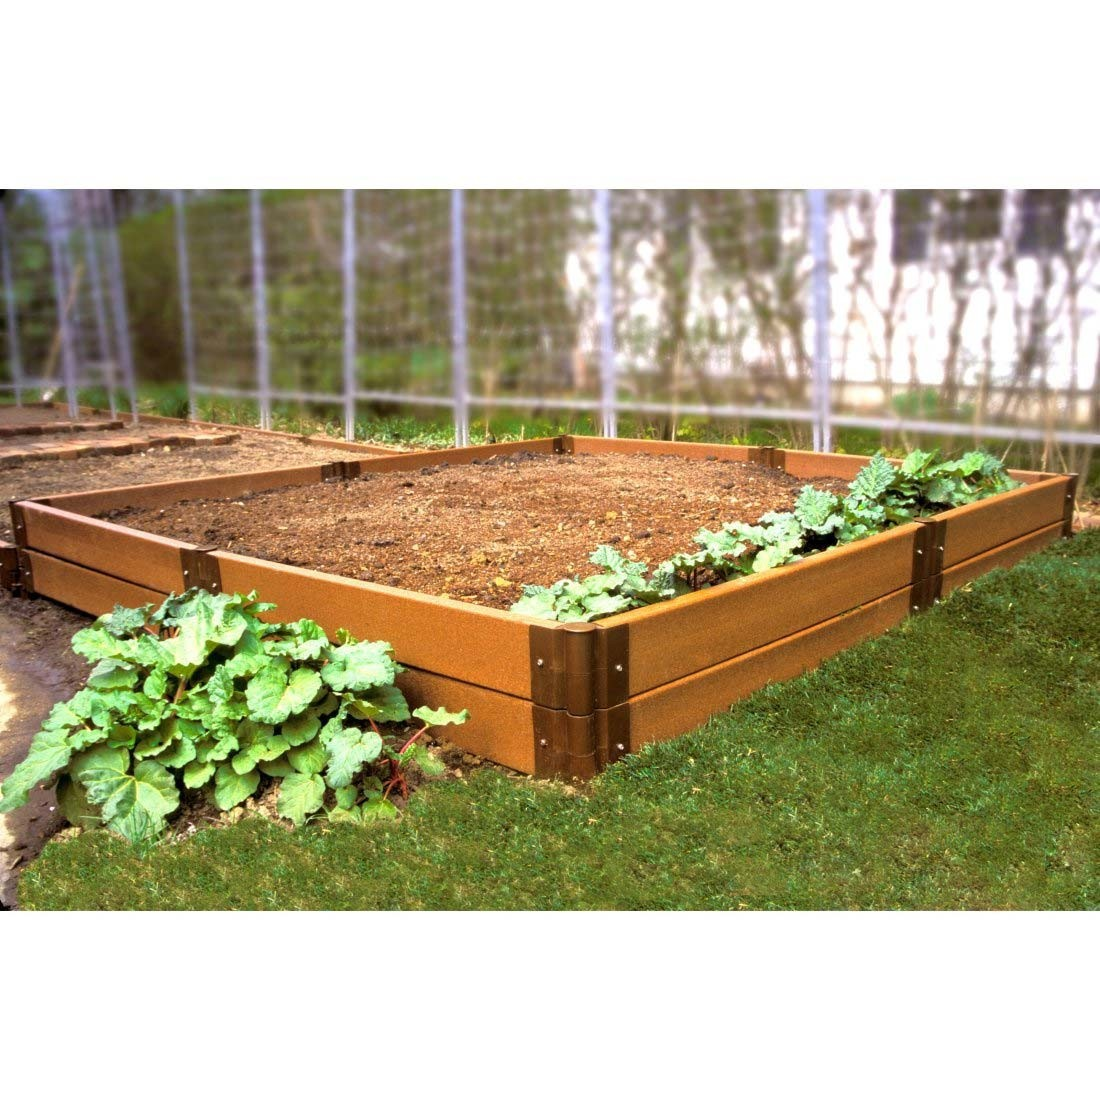 Raised garden bed kitgronomics raised garden bed canada for Raised bed garden kits